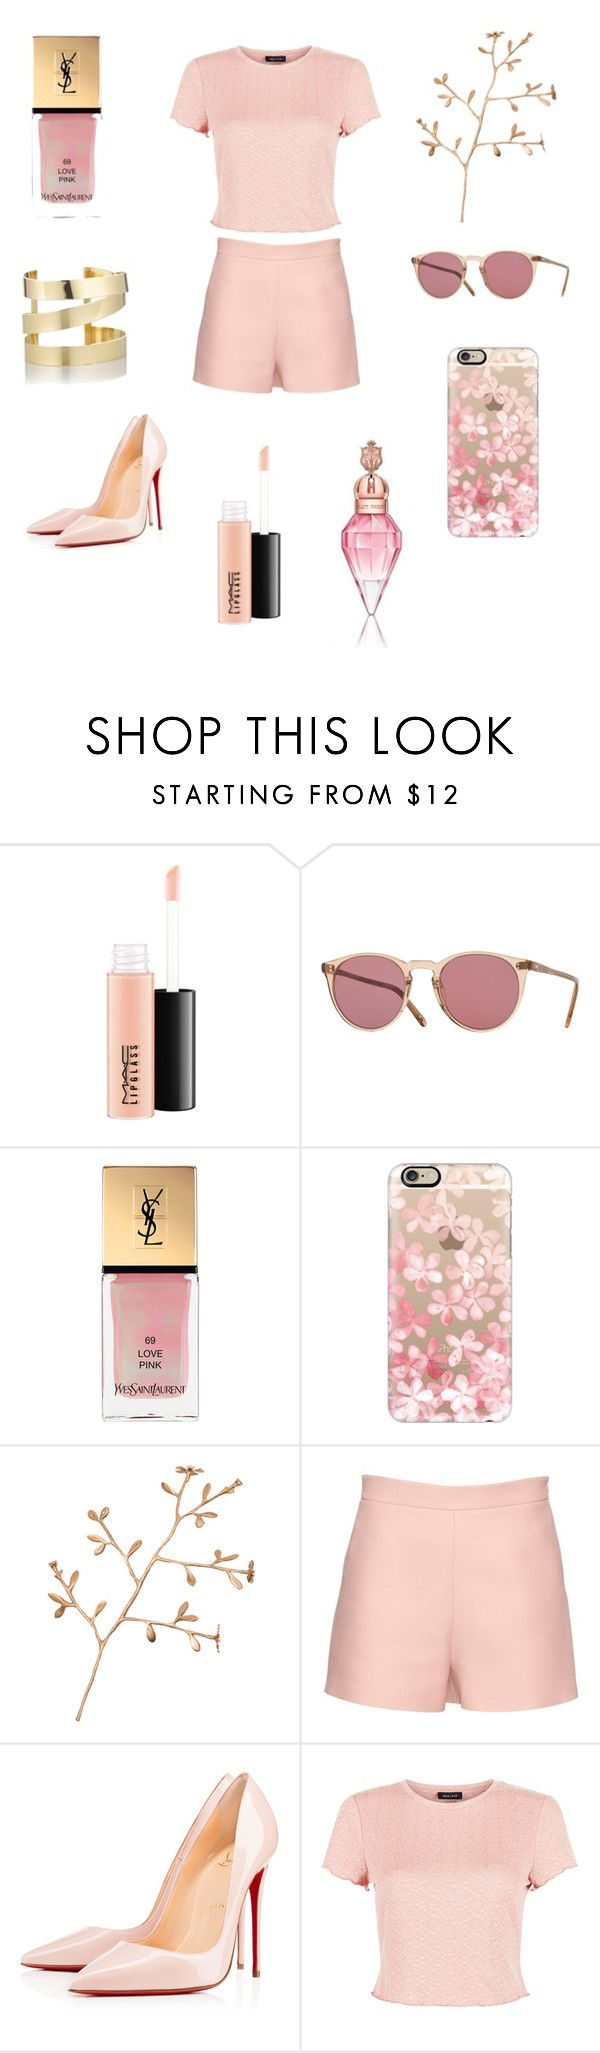 """Spring #1 🌻☀️"" by anna-miller10 ❤ liked on Polyvore featuring MAC Cosmetics, Yves Saint Laurent, Casetify, Rojo16, Valentino, Christian Louboutin, New Look and Étoile Isabel Marant"